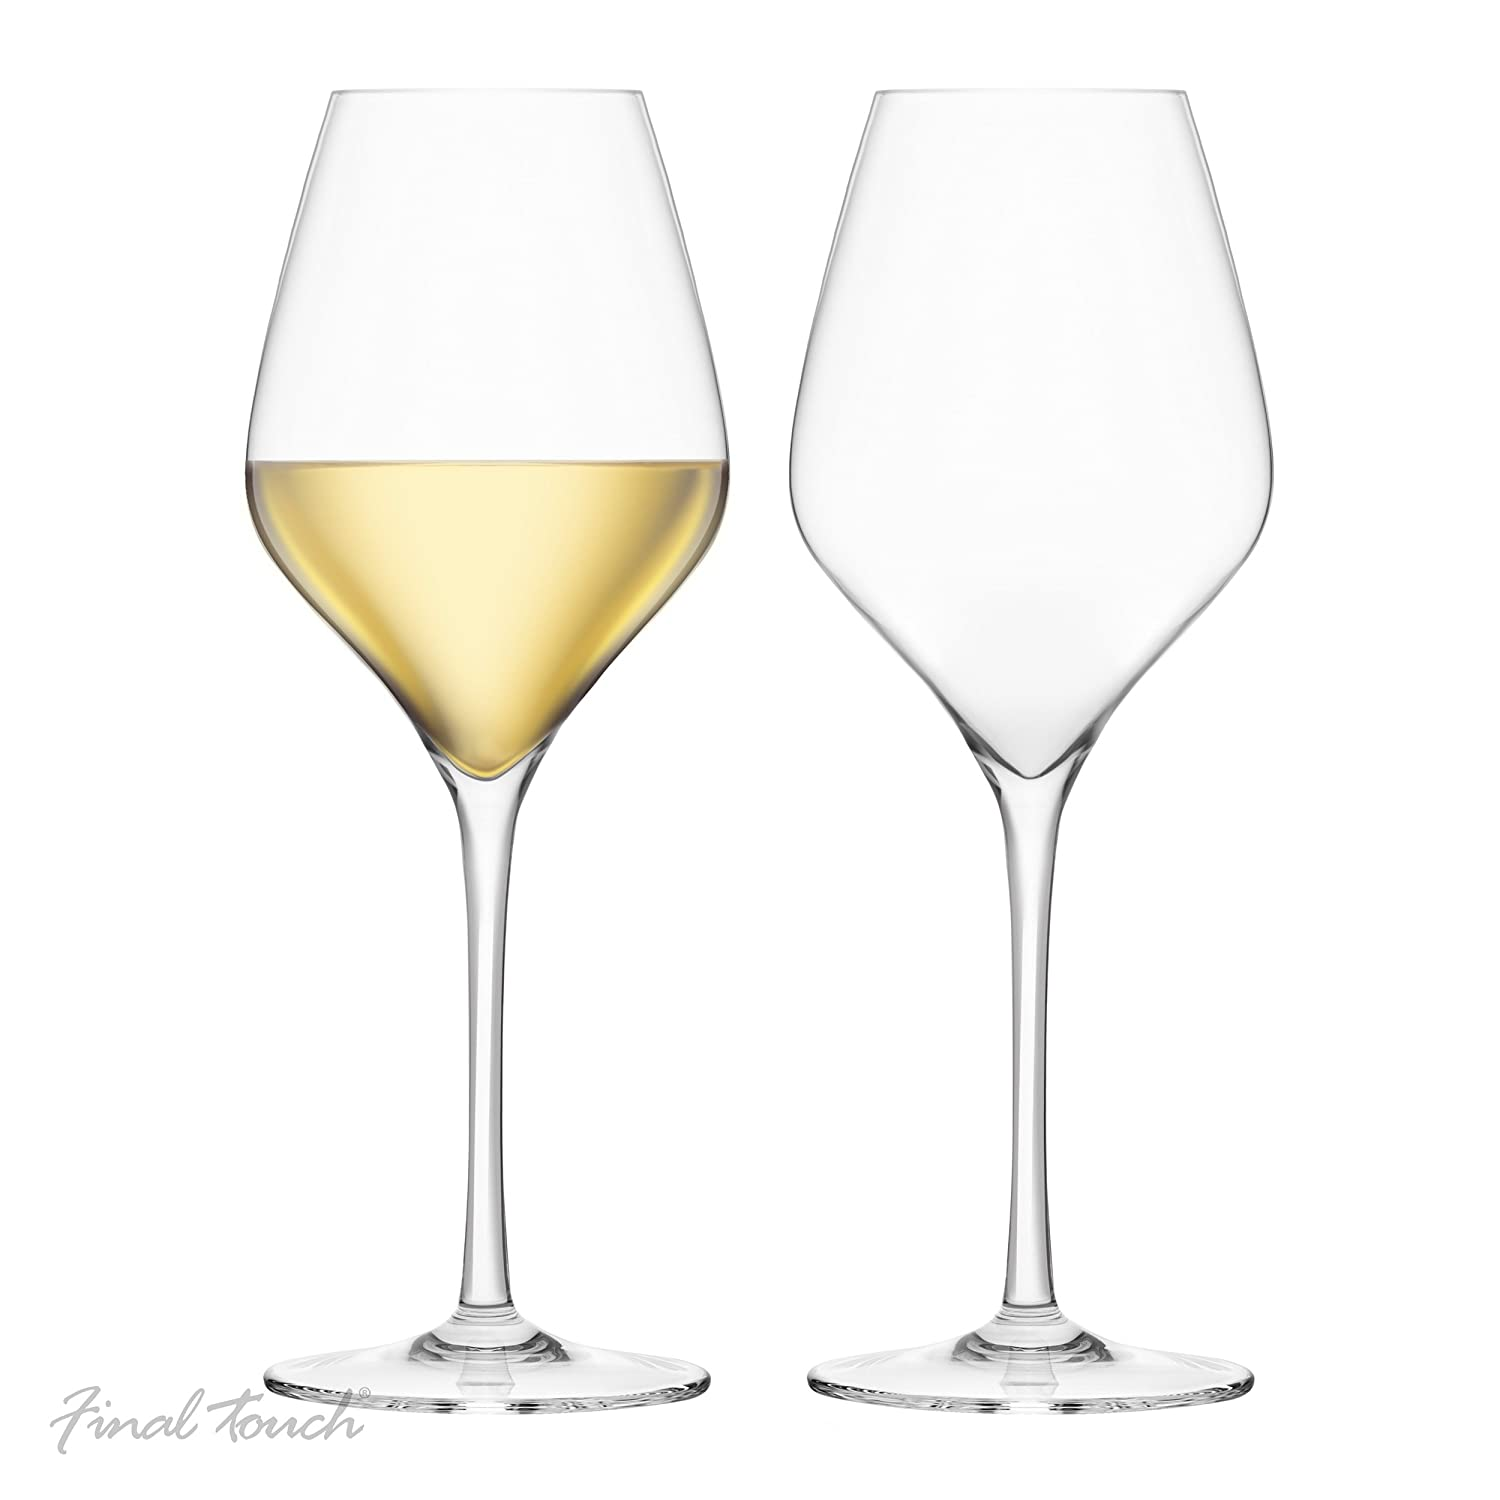 Final Touch 100% Lead-free Crystal White Wine Glasses Goblets Made with DuraSHIELD Titanium Reinforced for Increased Durability Tall 24cm 440 ml - Pack of 2